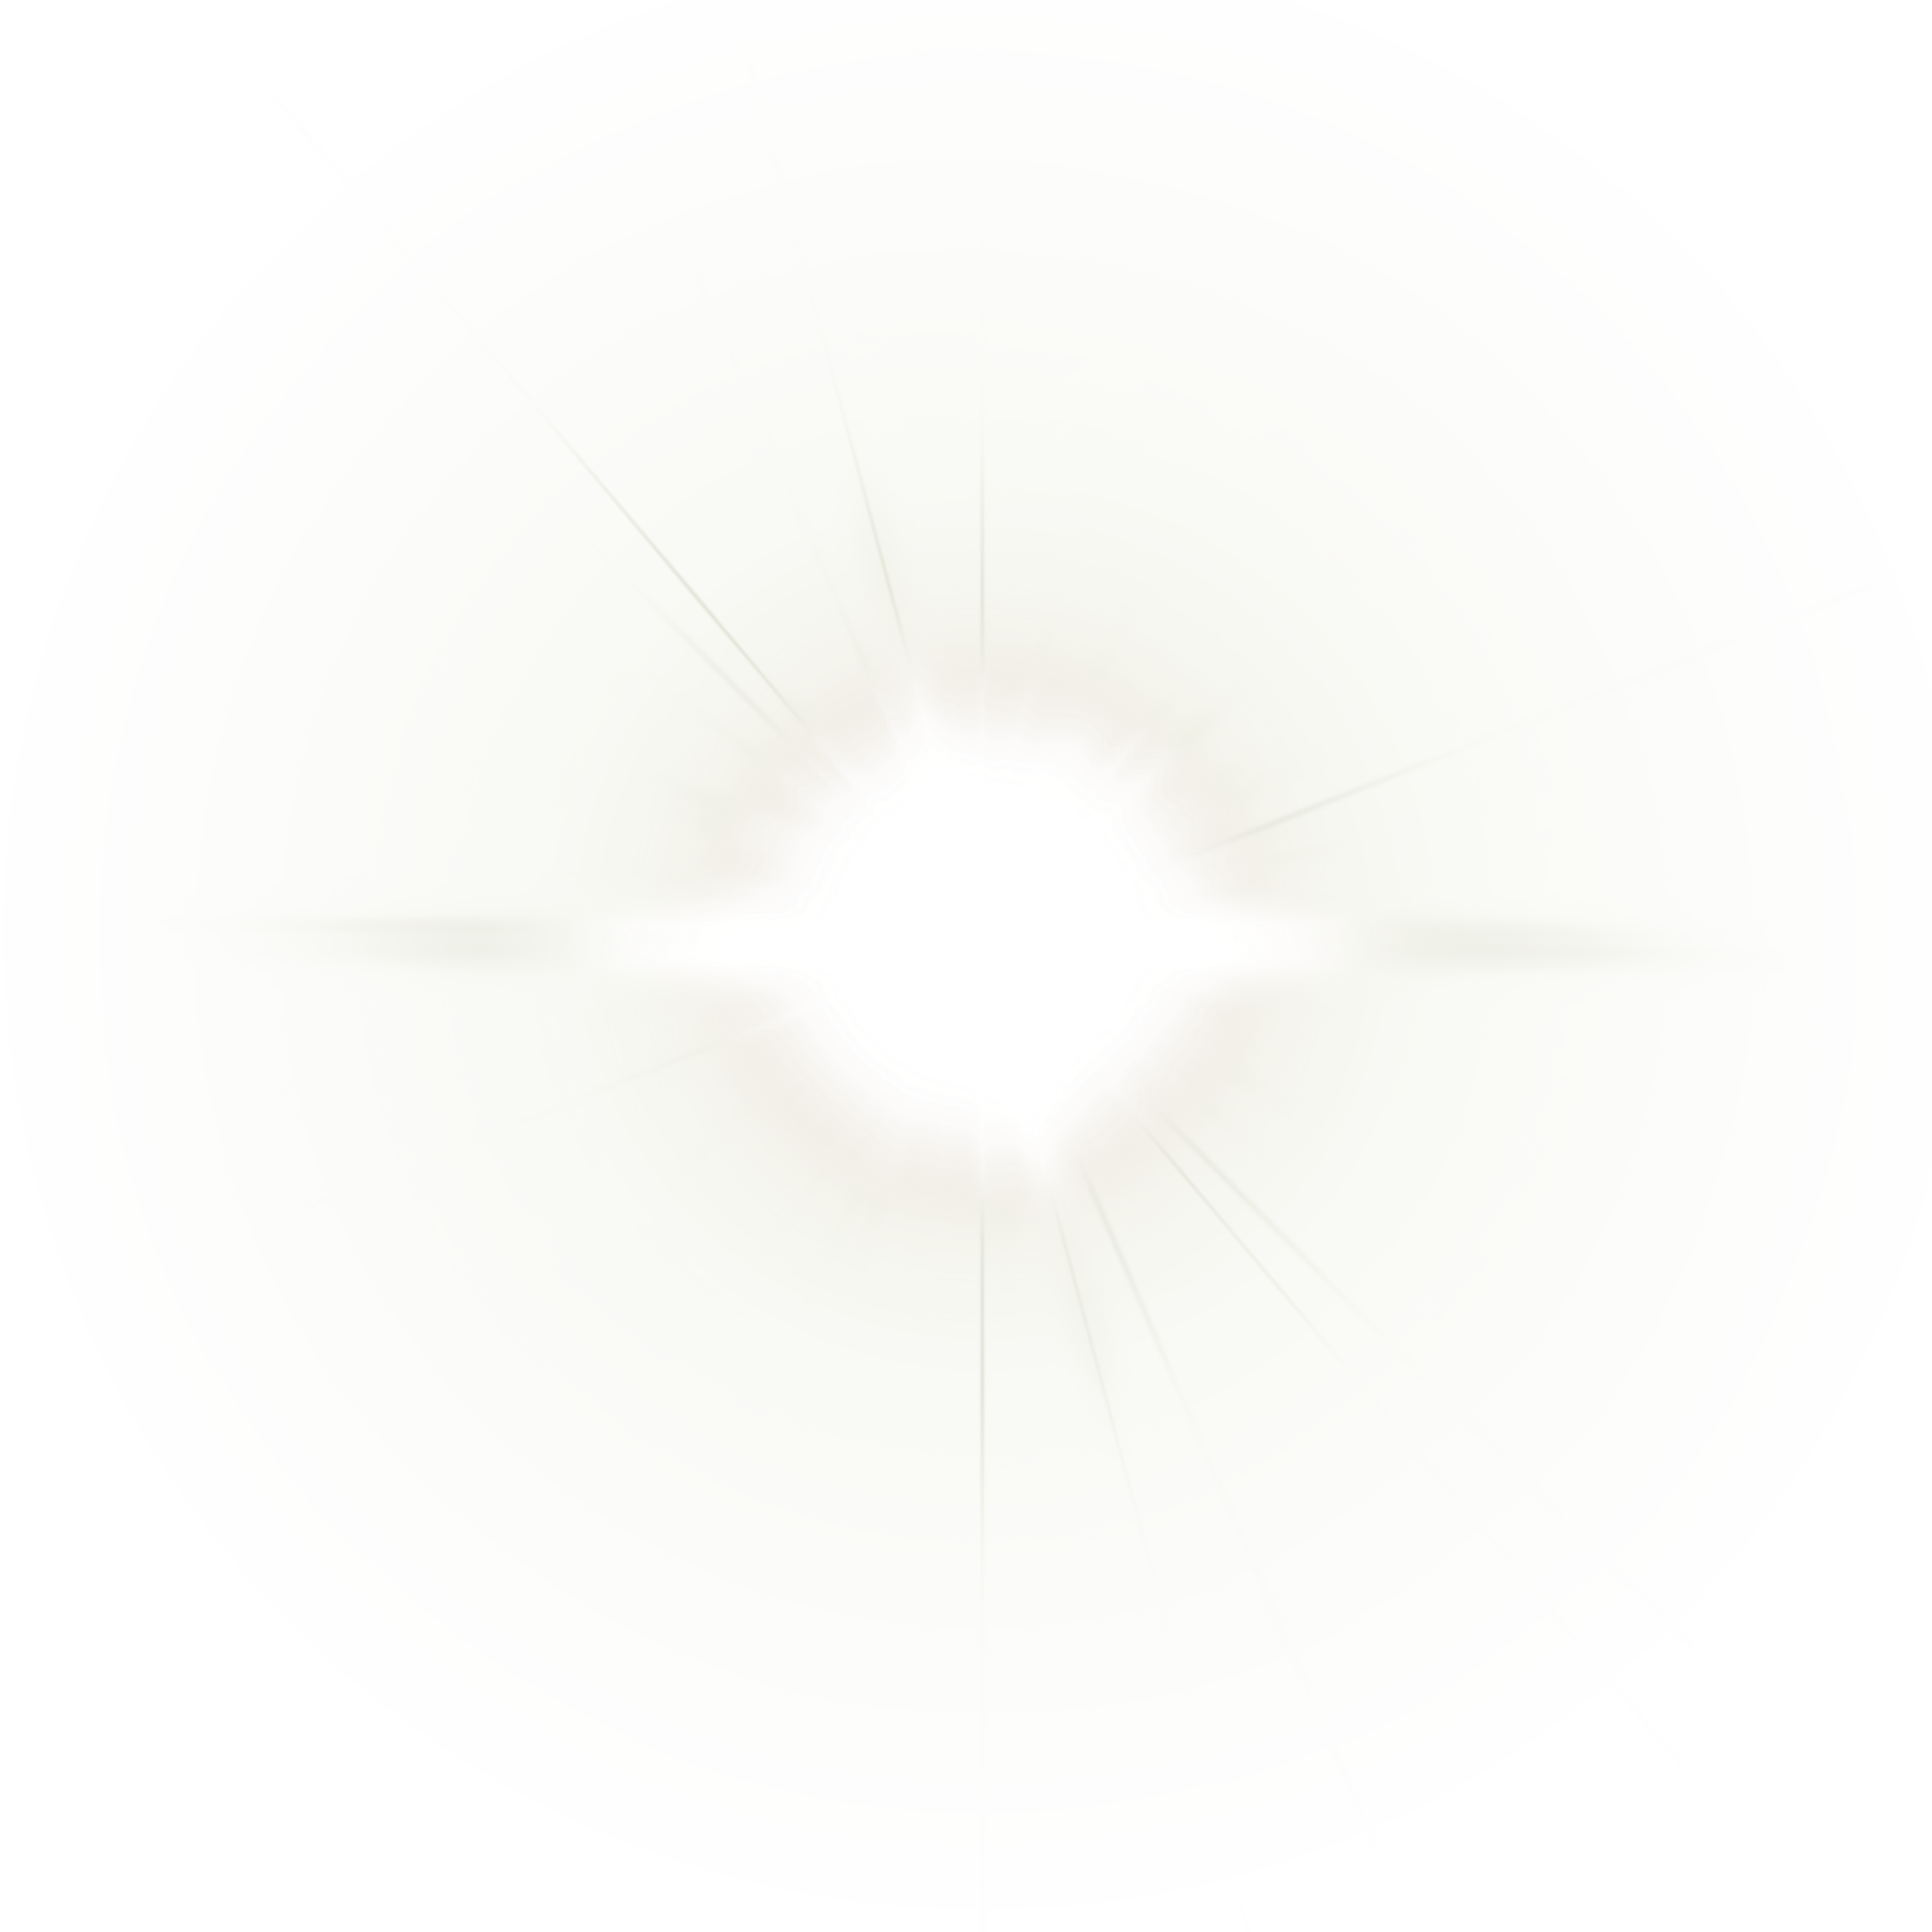 Sun png images real. Sunny clipart daytime sky